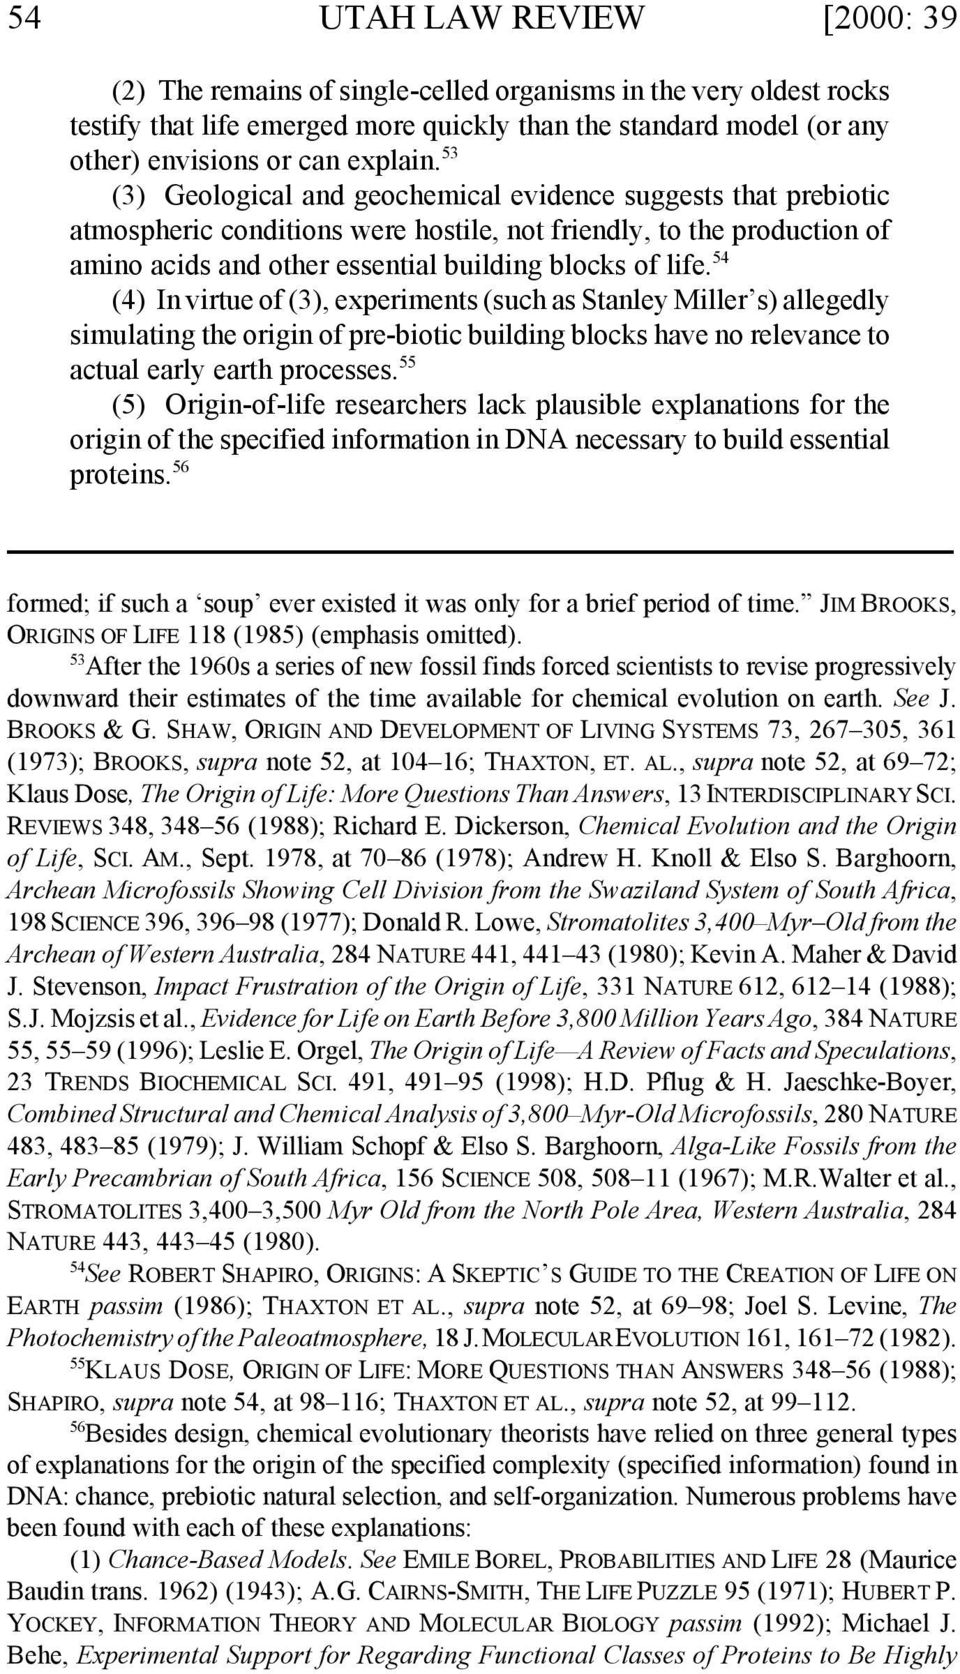 54 (4) In virtue of (3), experiments (such as Stanley Miller s) allegedly simulating the origin of pre-biotic building blocks have no relevance to actual early earth processes.